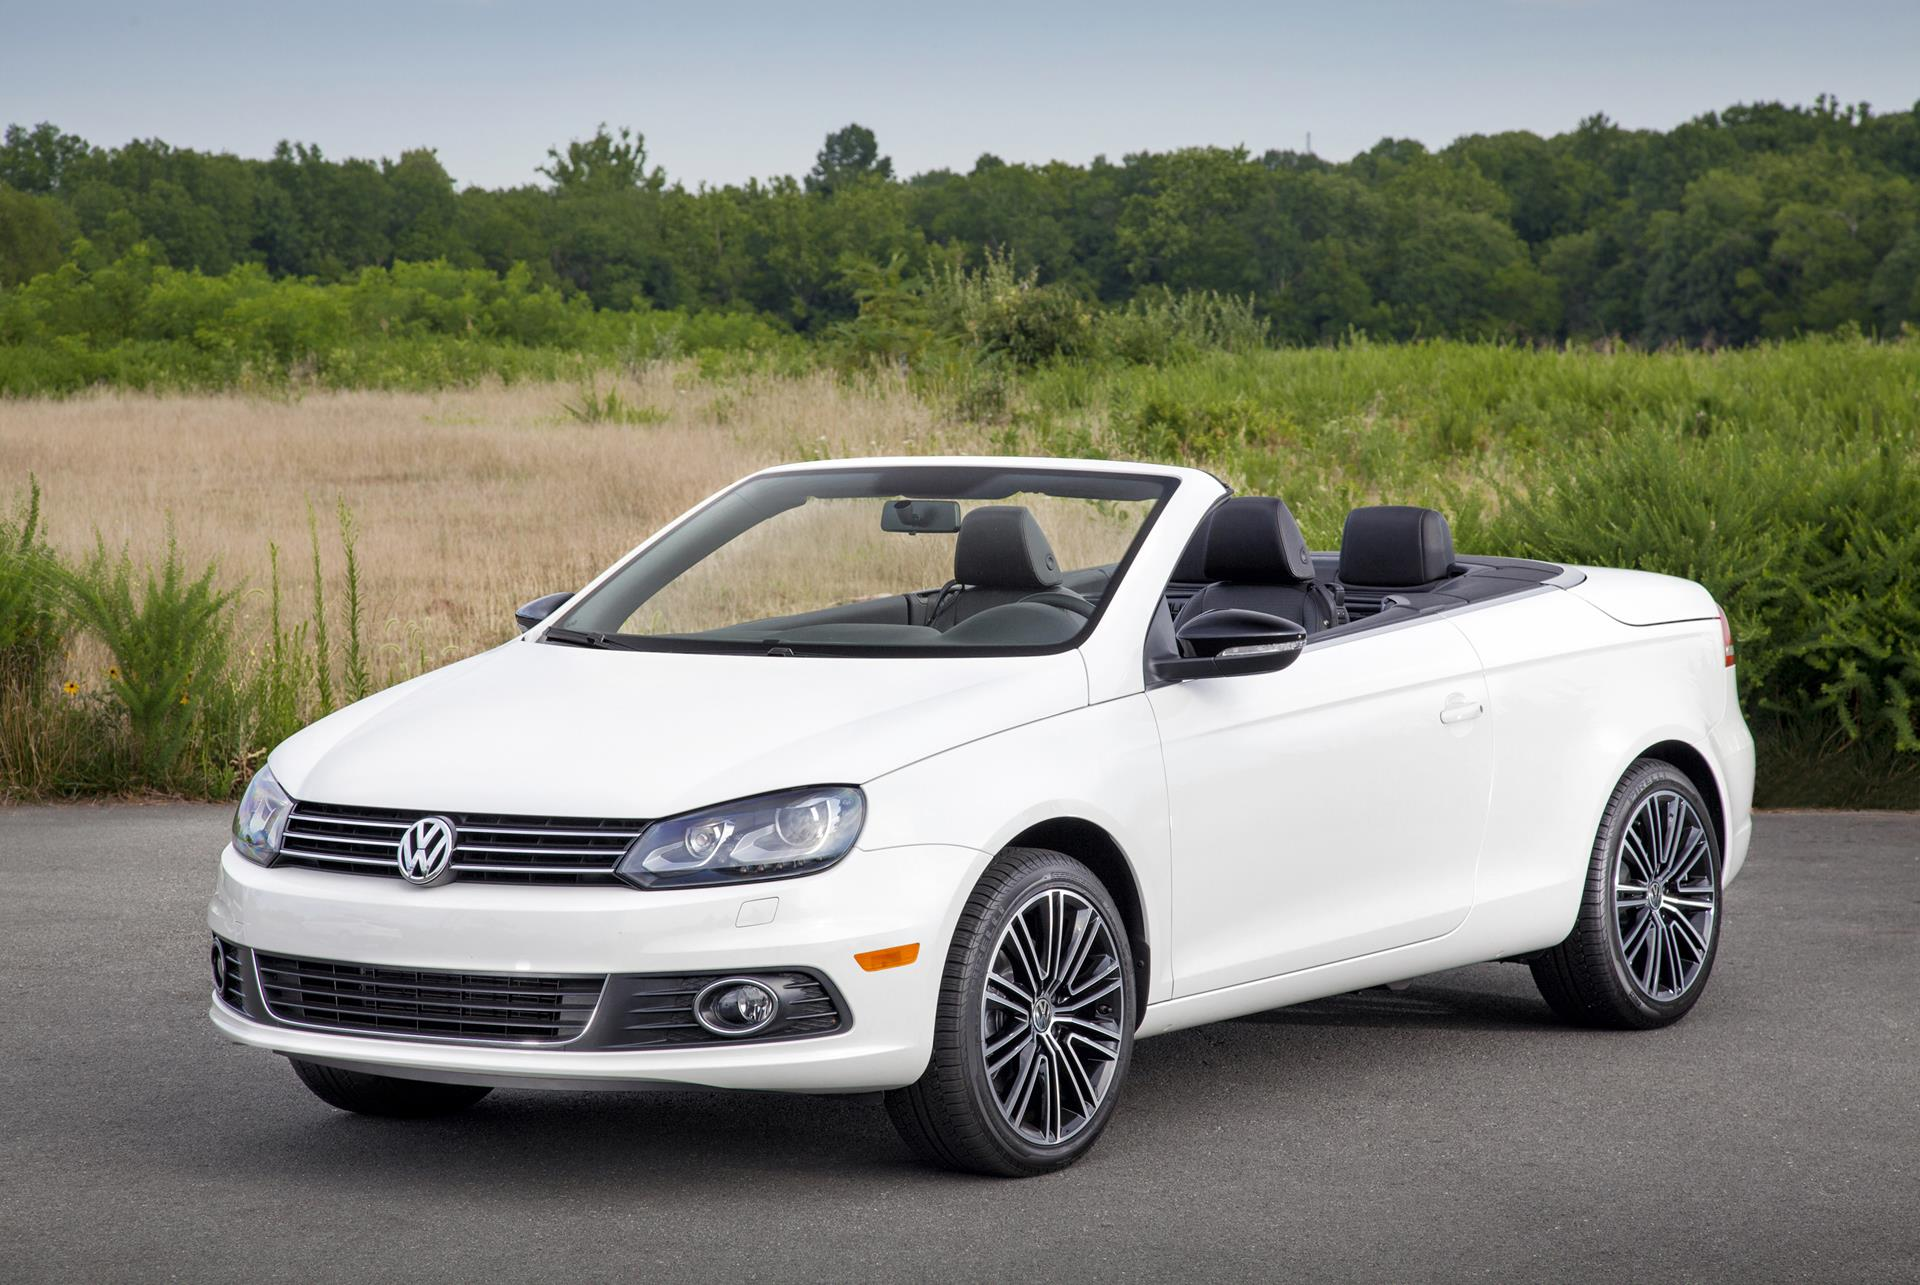 2016 volkswagen eos. Black Bedroom Furniture Sets. Home Design Ideas